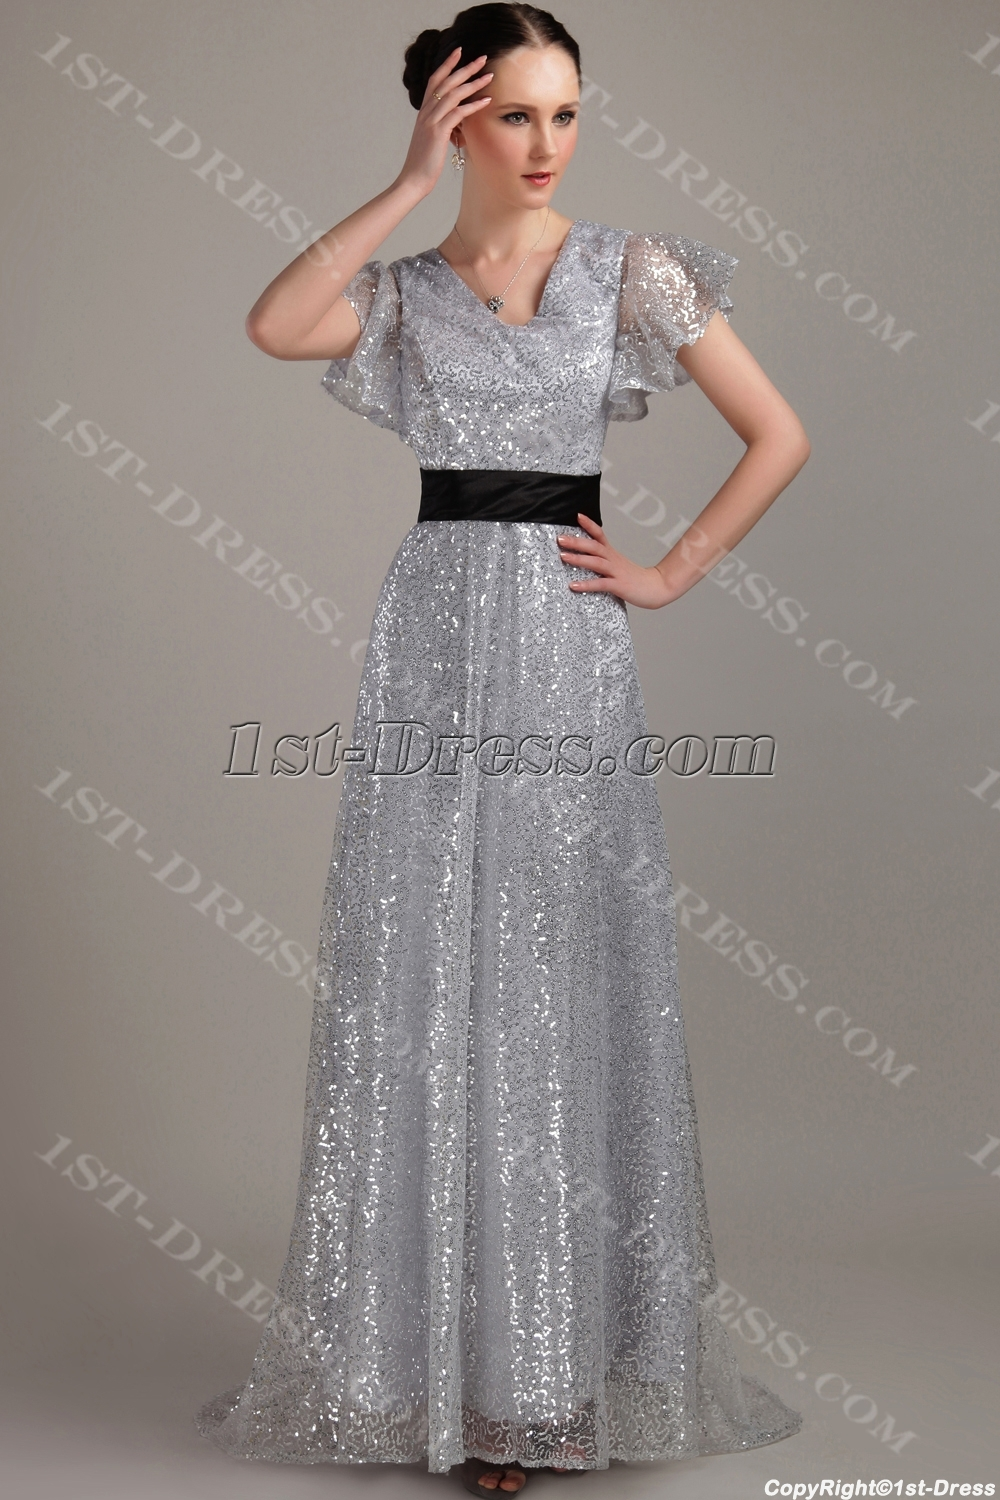 images/201304/big/Silver-and-Black-Celebrity-Dress-with-Sleeves-IMG_3288-1064-b-1-1366195315.jpg